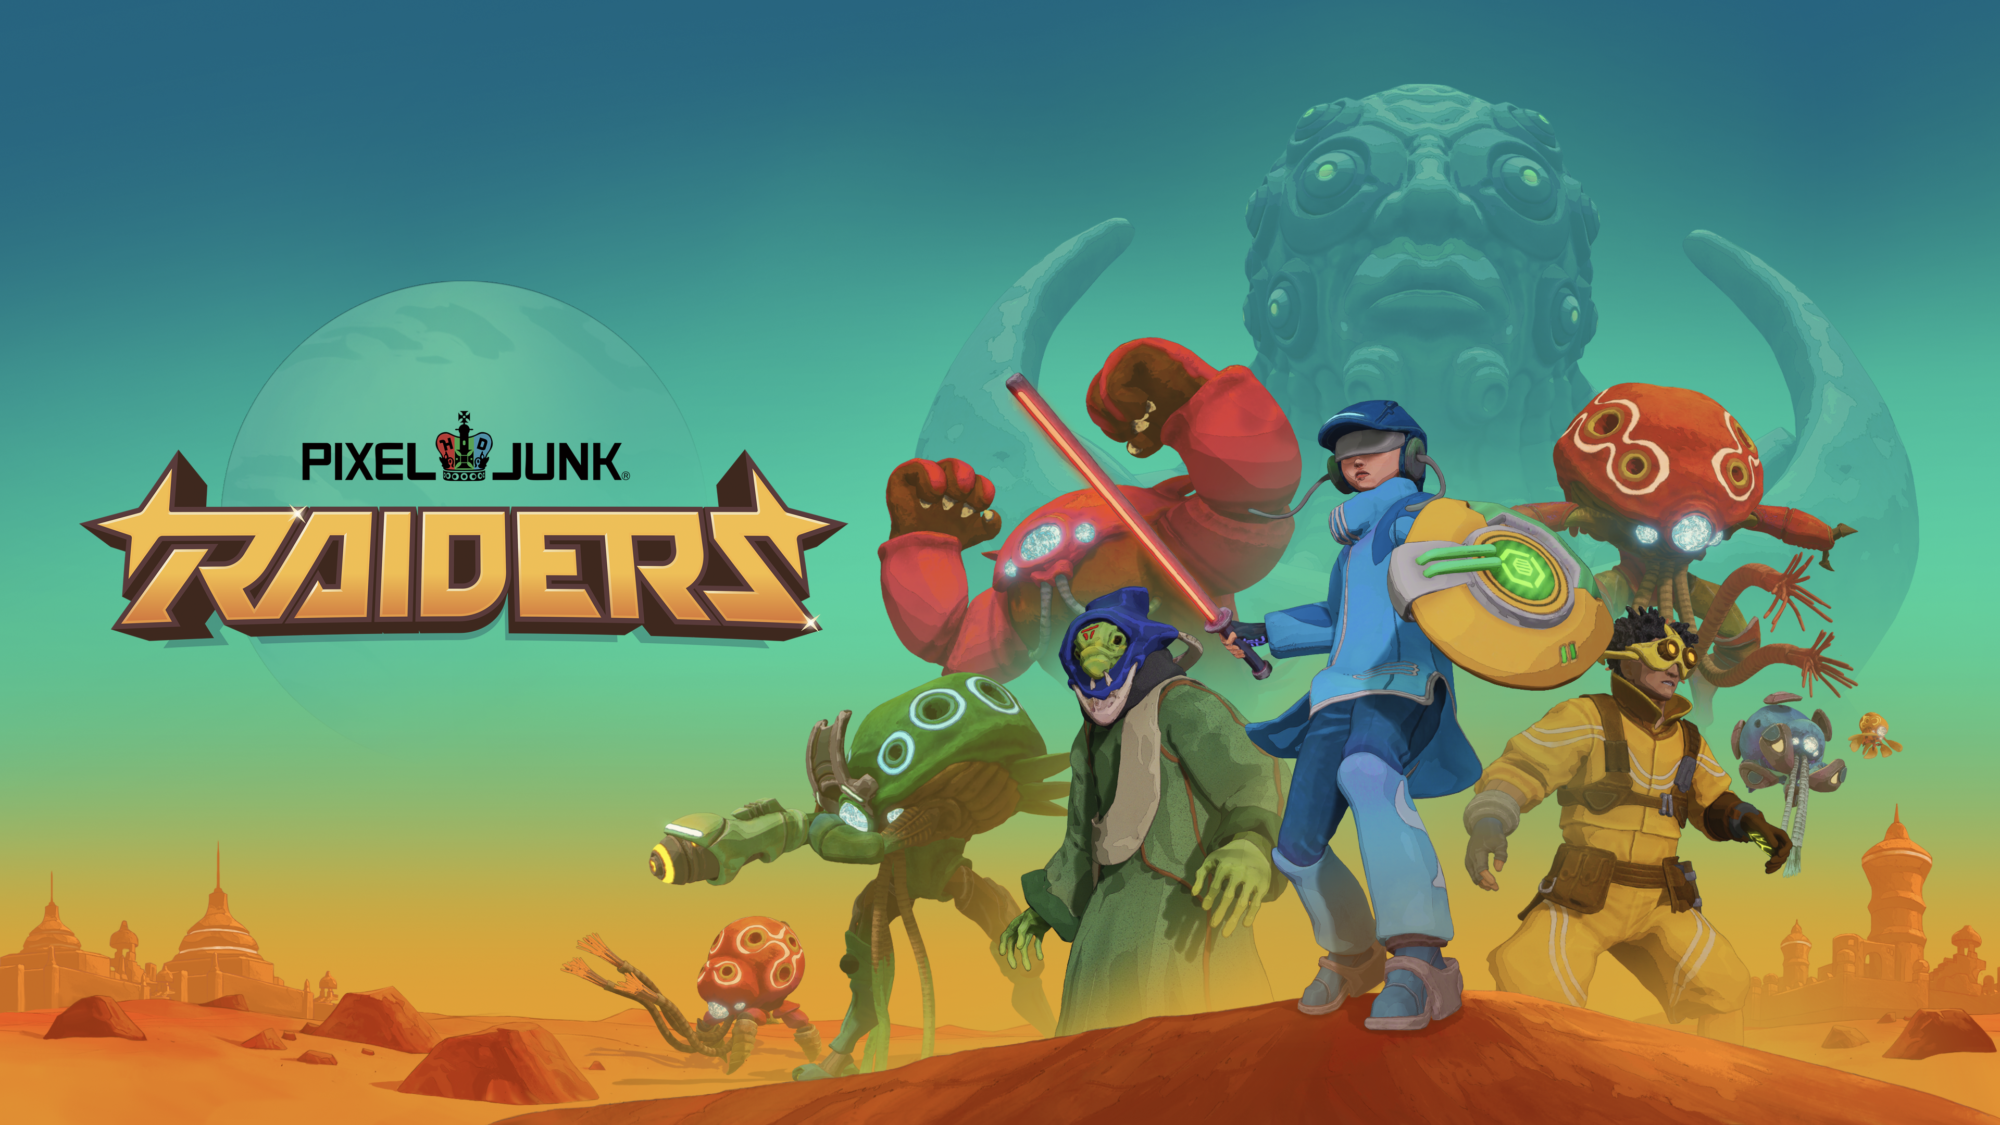 Google Reveals New Exclusive Stadia Title With PixelJunk Raiders